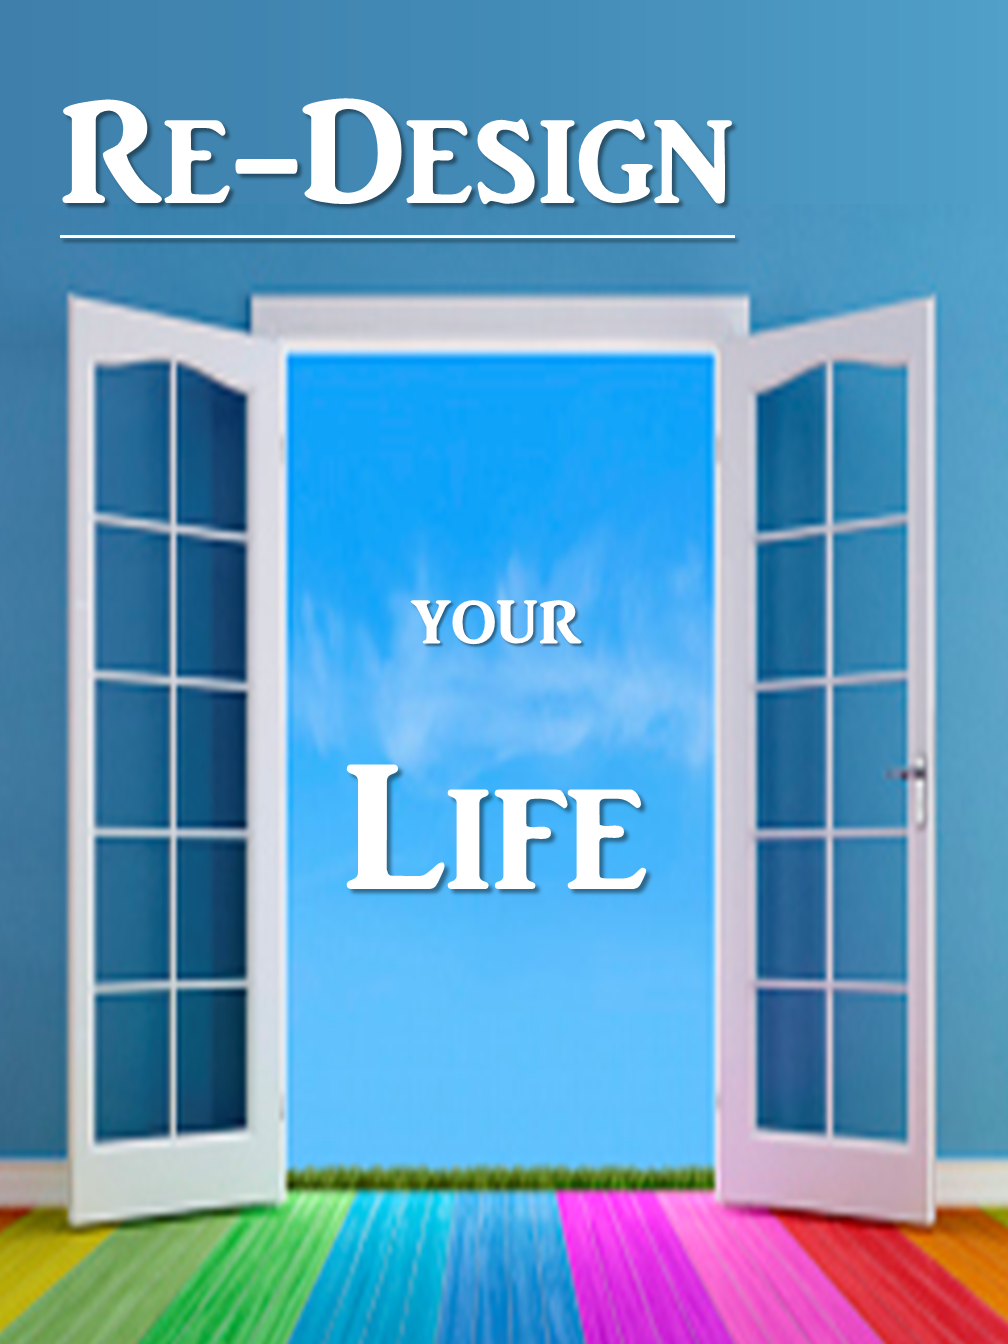 Re-Design your Life